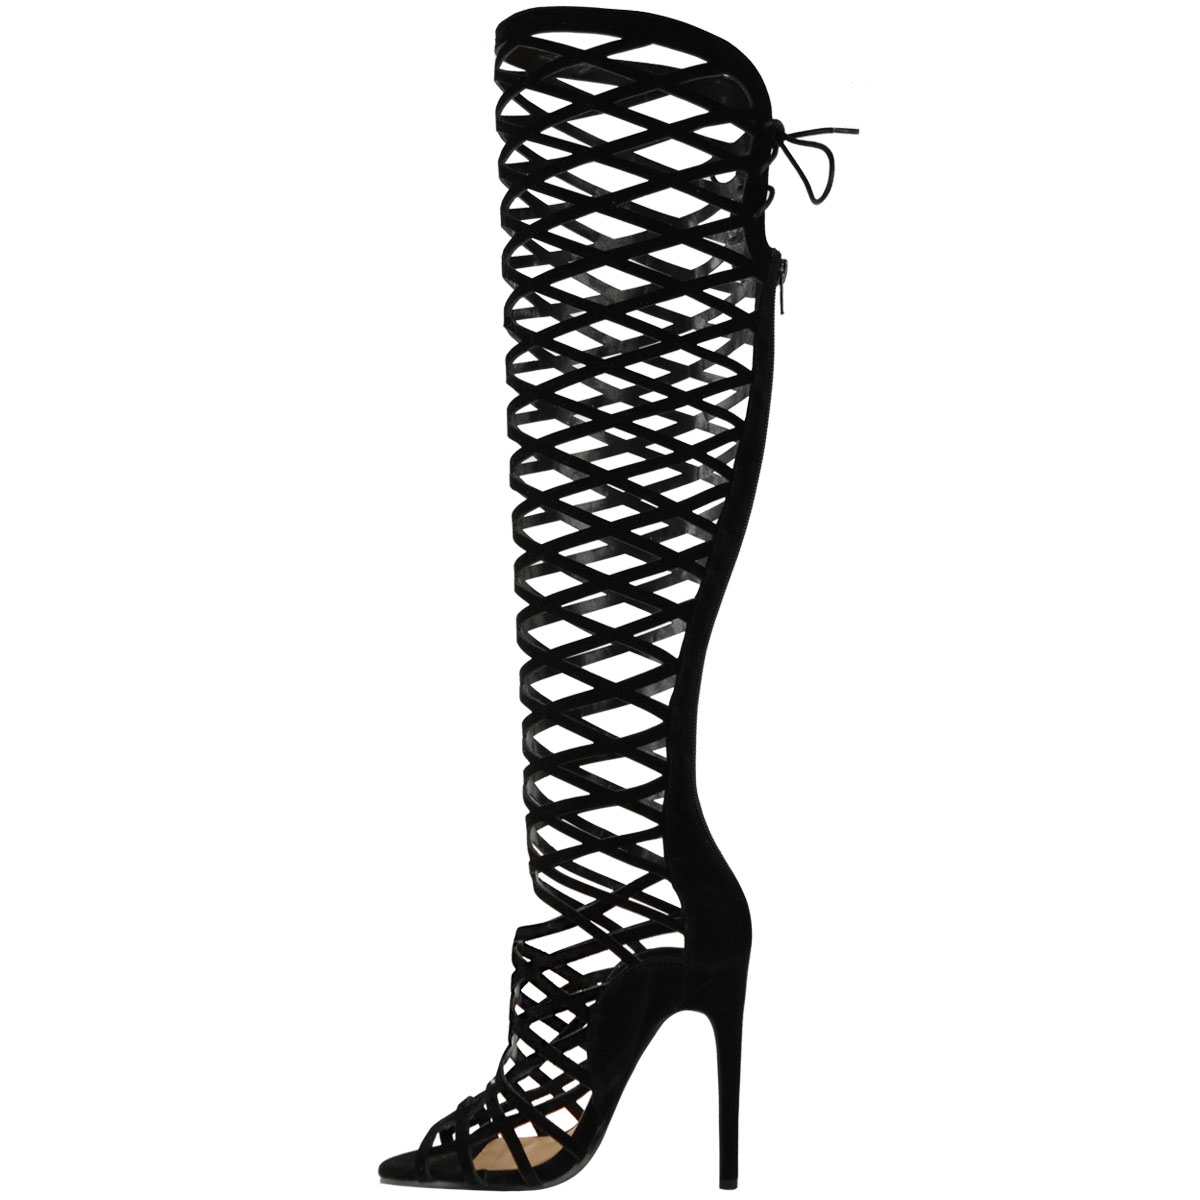 95de58038db50f LADIES WOMENS CUT OUT LACE KNEE HIGH HEEL BOOTS GLADIATOR SANDALS .